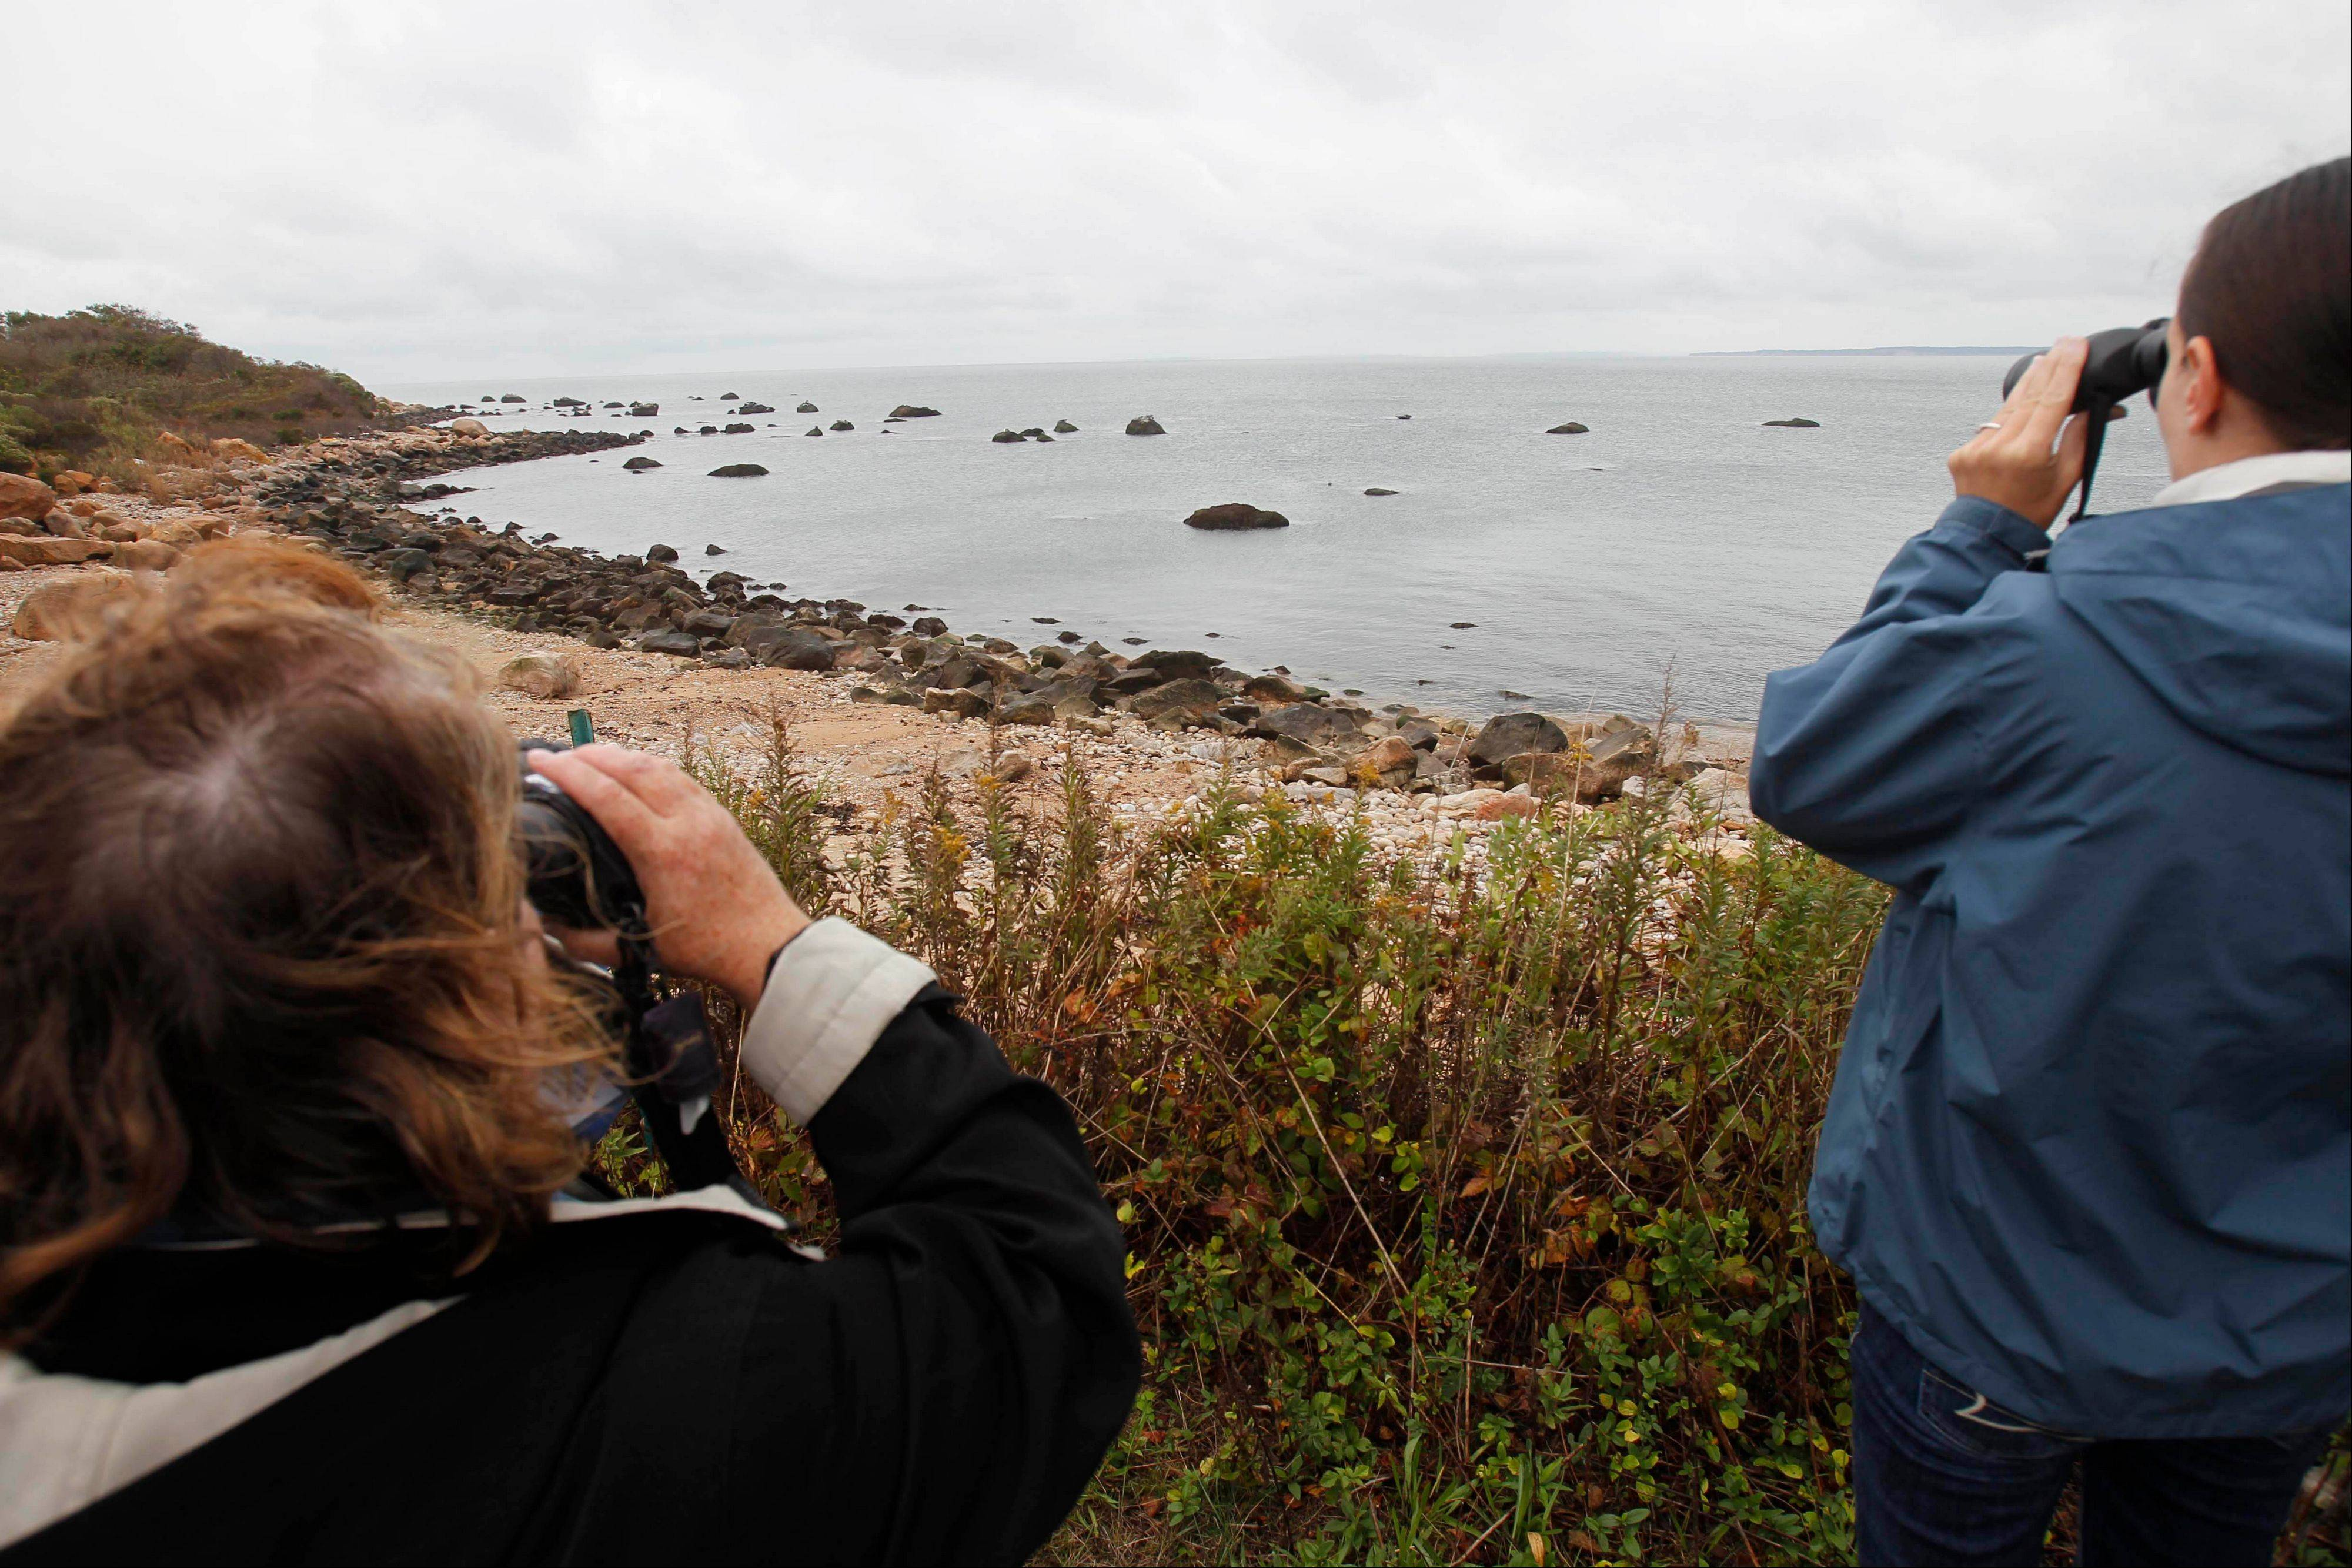 People on a tour of Plum Island, N.Y., off the coast of Long Island, watch seals relaxing on the rocky shore. Environmental groups on both sides of Long Island Sound have for several years called for the property, where the U.S. Department of Agriculture studies animal diseases, to be kept as a nature preserve.